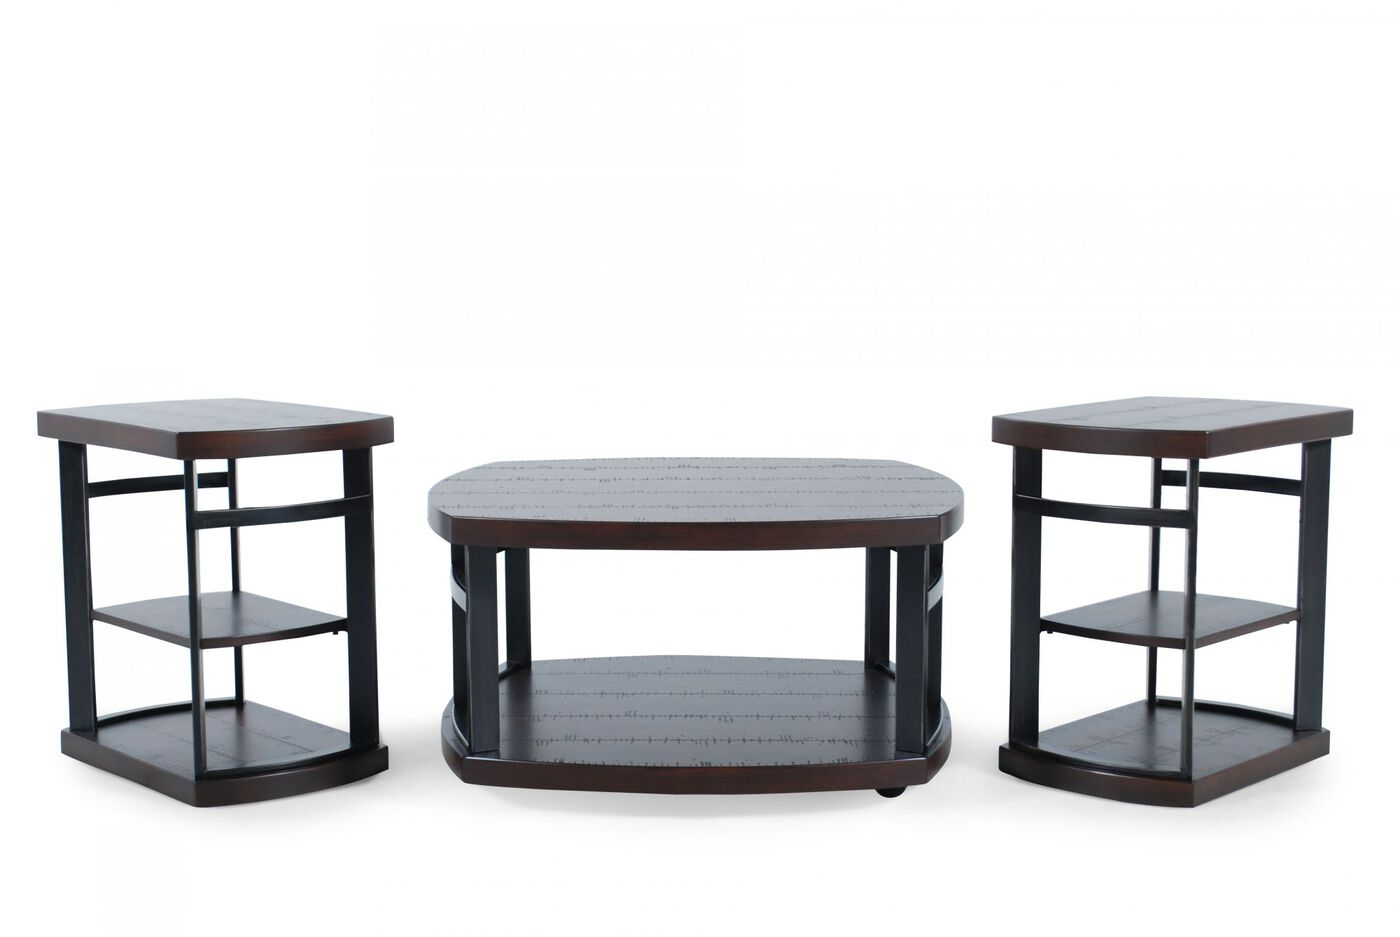 Three piece casual table set in brown mathis brothers furniture for Mathis brothers living room furniture